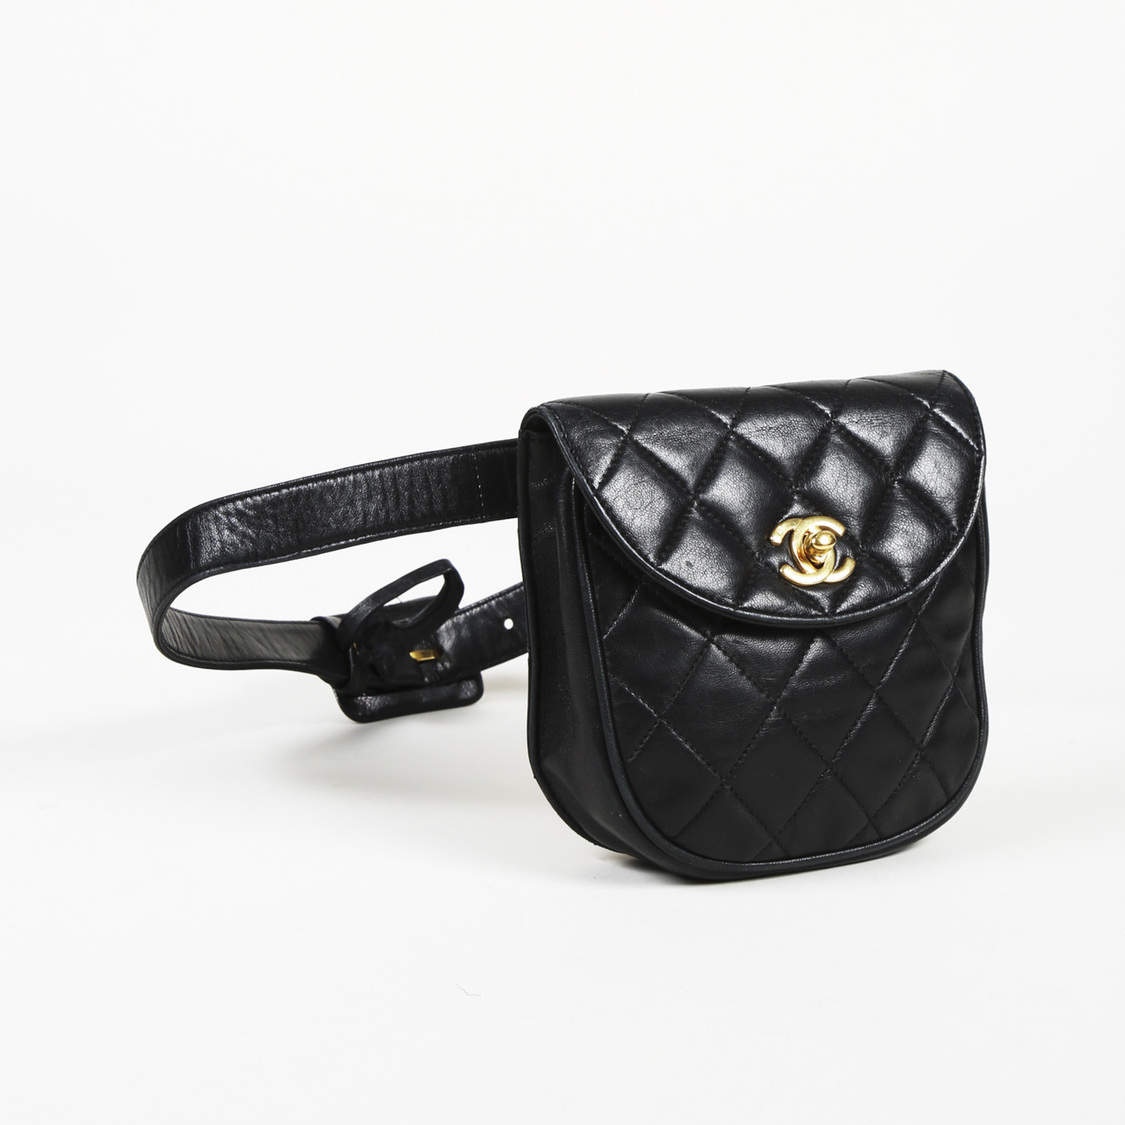 971f1889 Details about Vintage Chanel Quilted Lambskin Leather Belt Bag